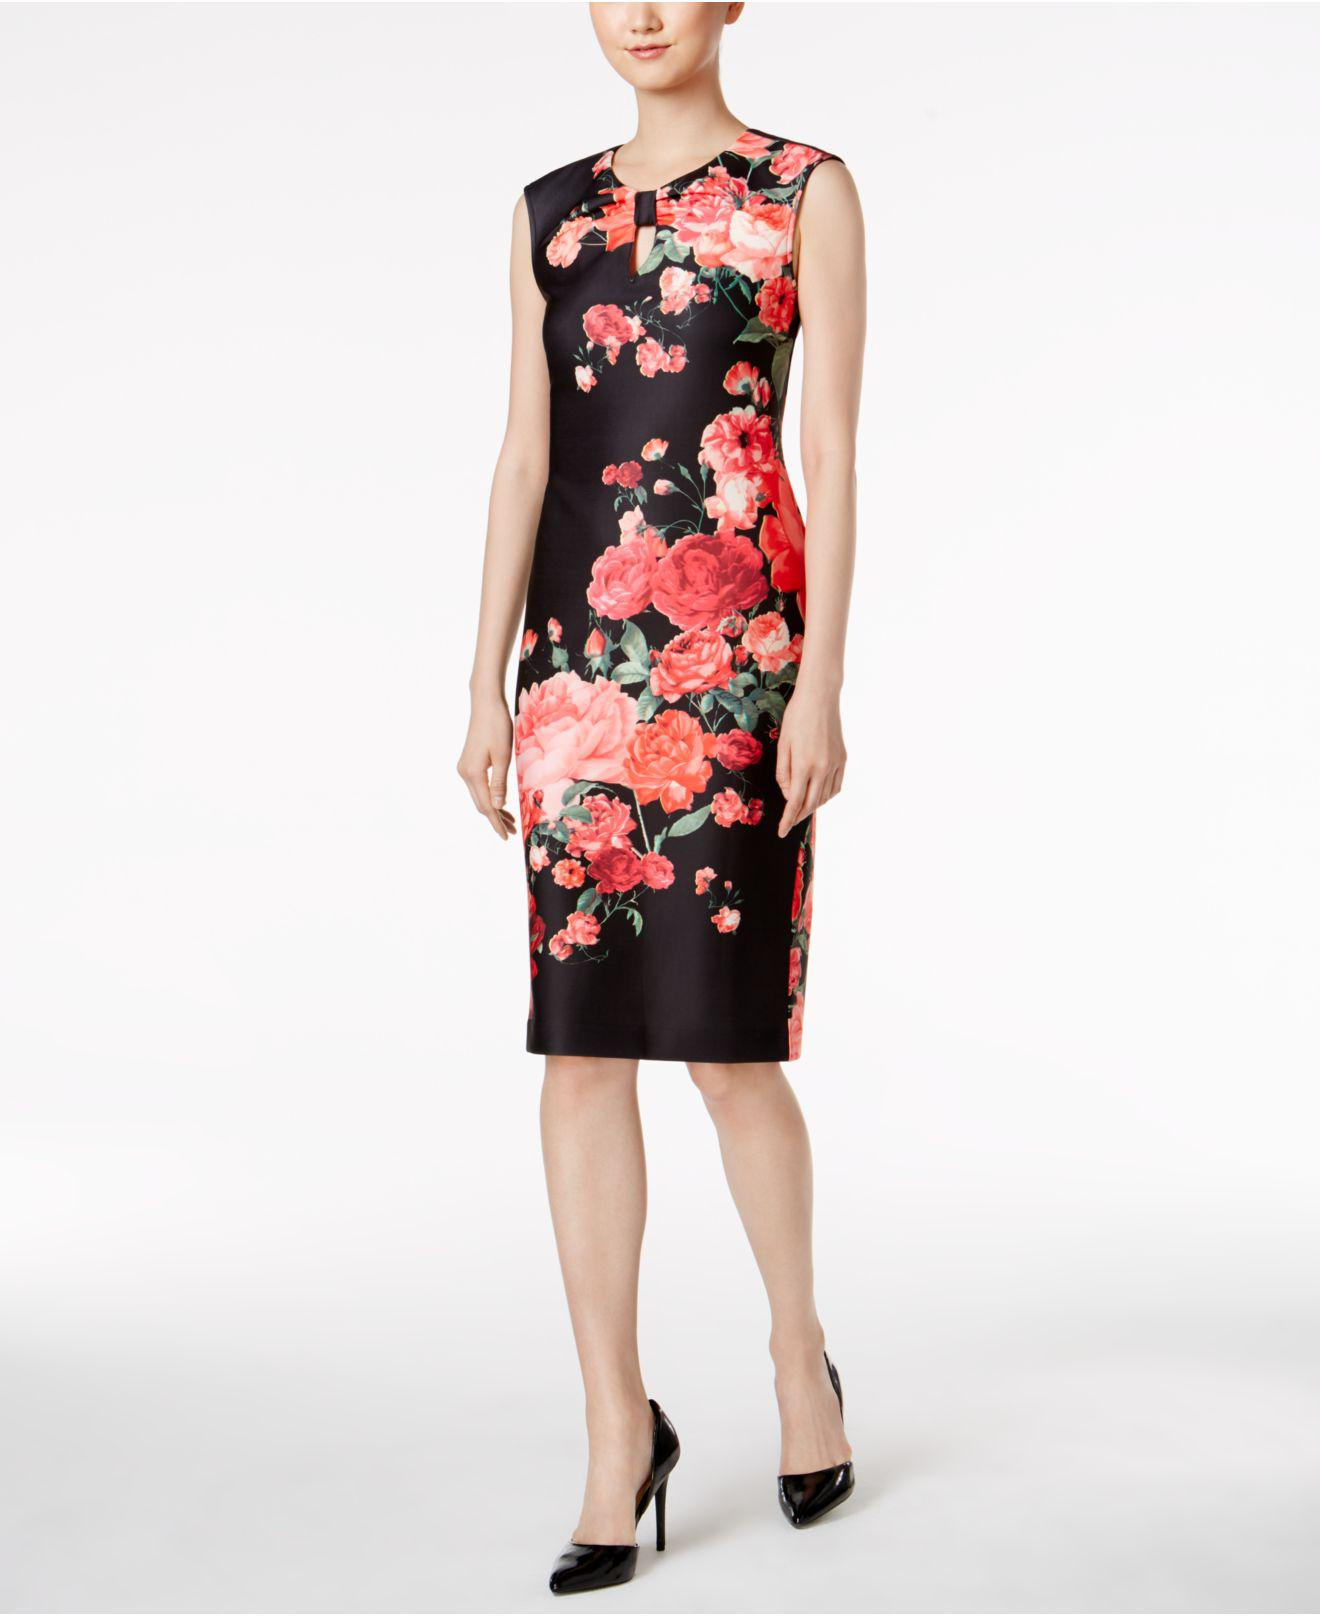 77e2cc7b5a8 Eci Floral Print Midi Dress - Data Dynamic AG